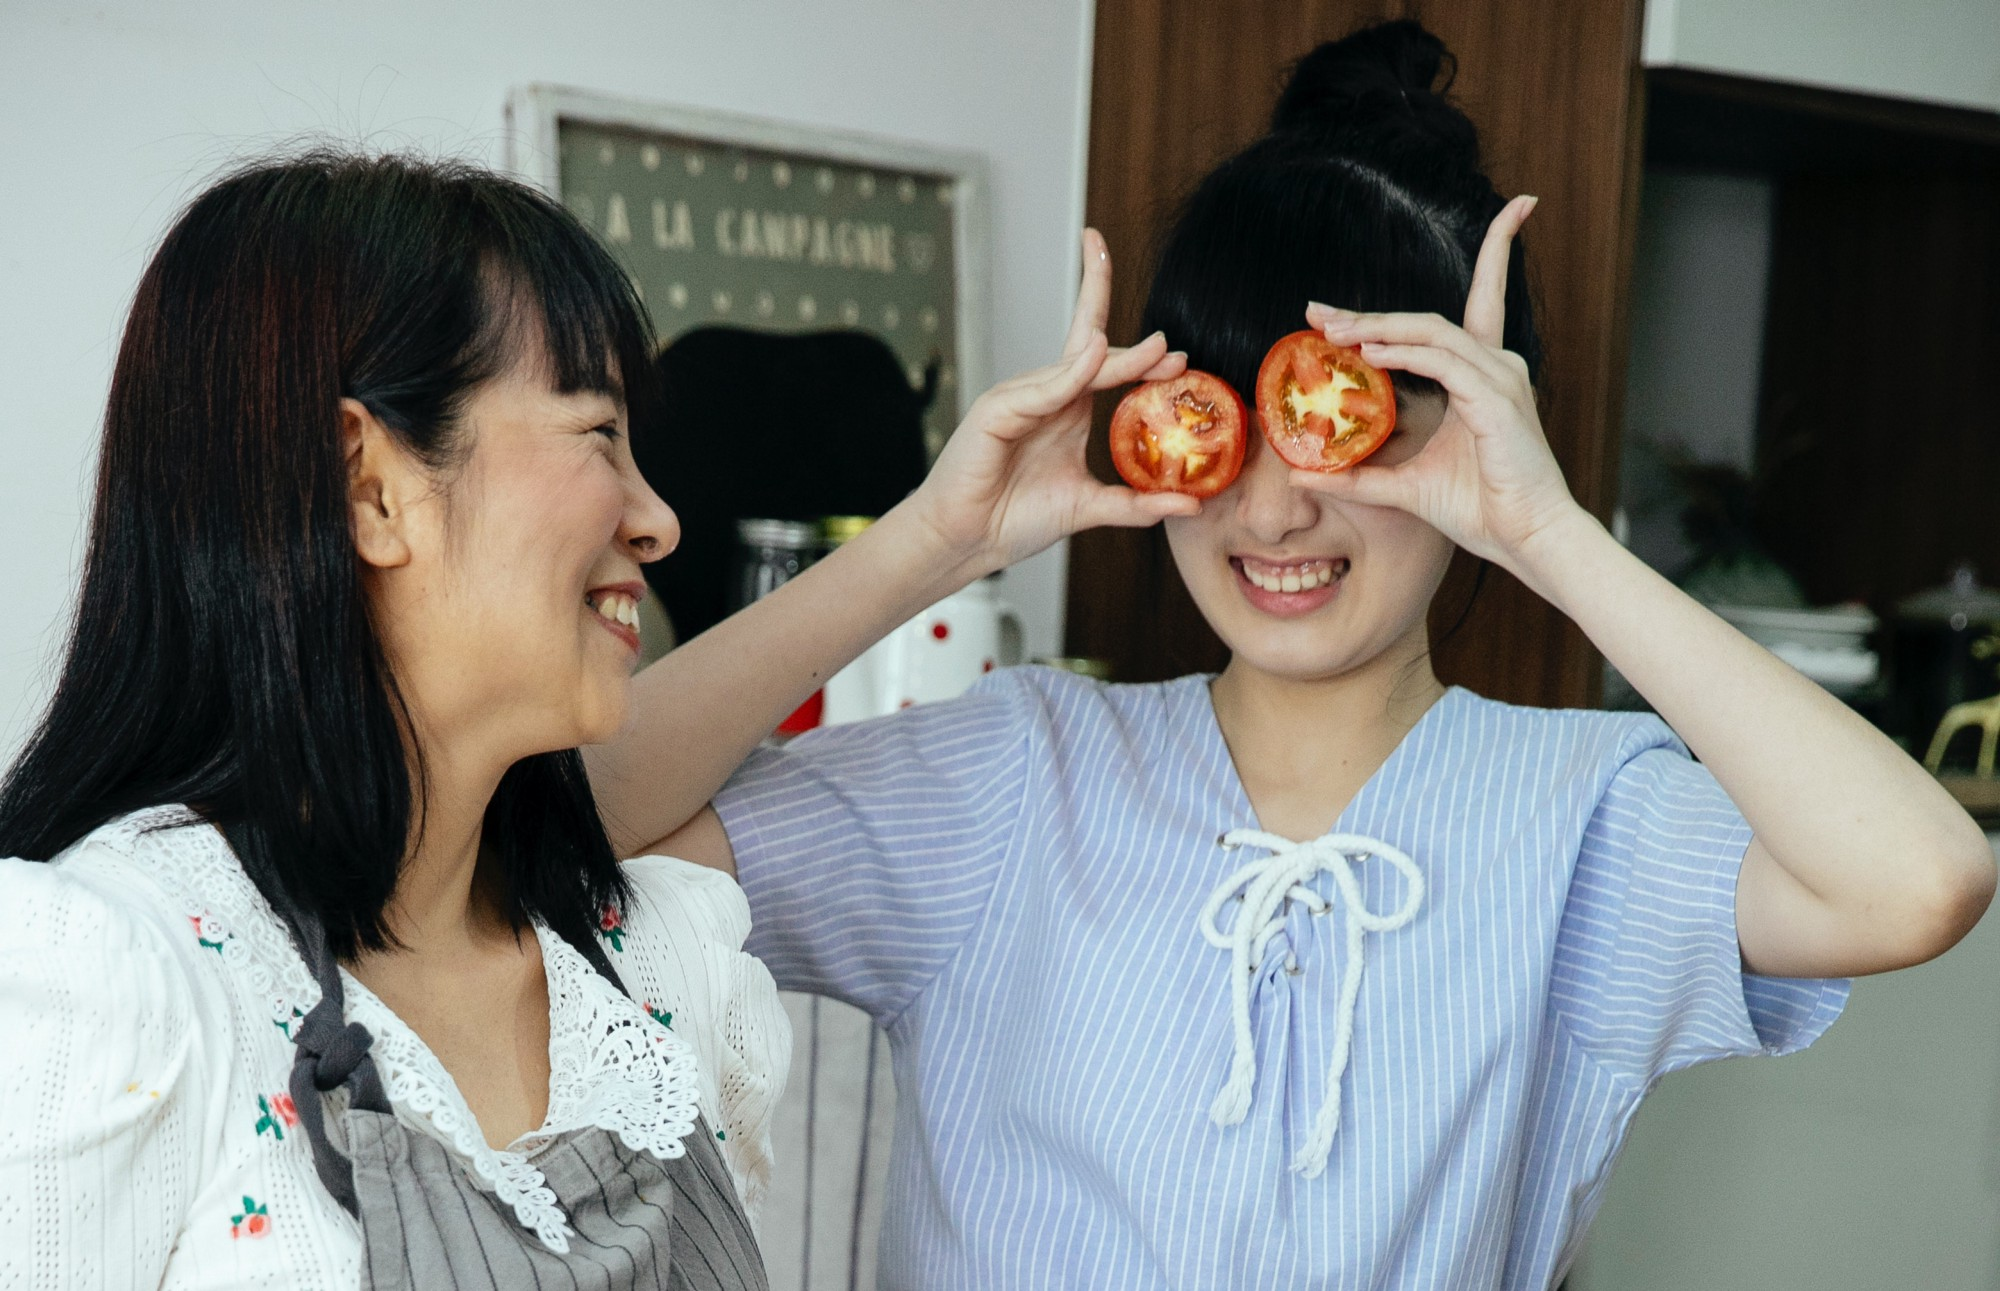 girl fun. She is take the halves of tomato on her eyes.